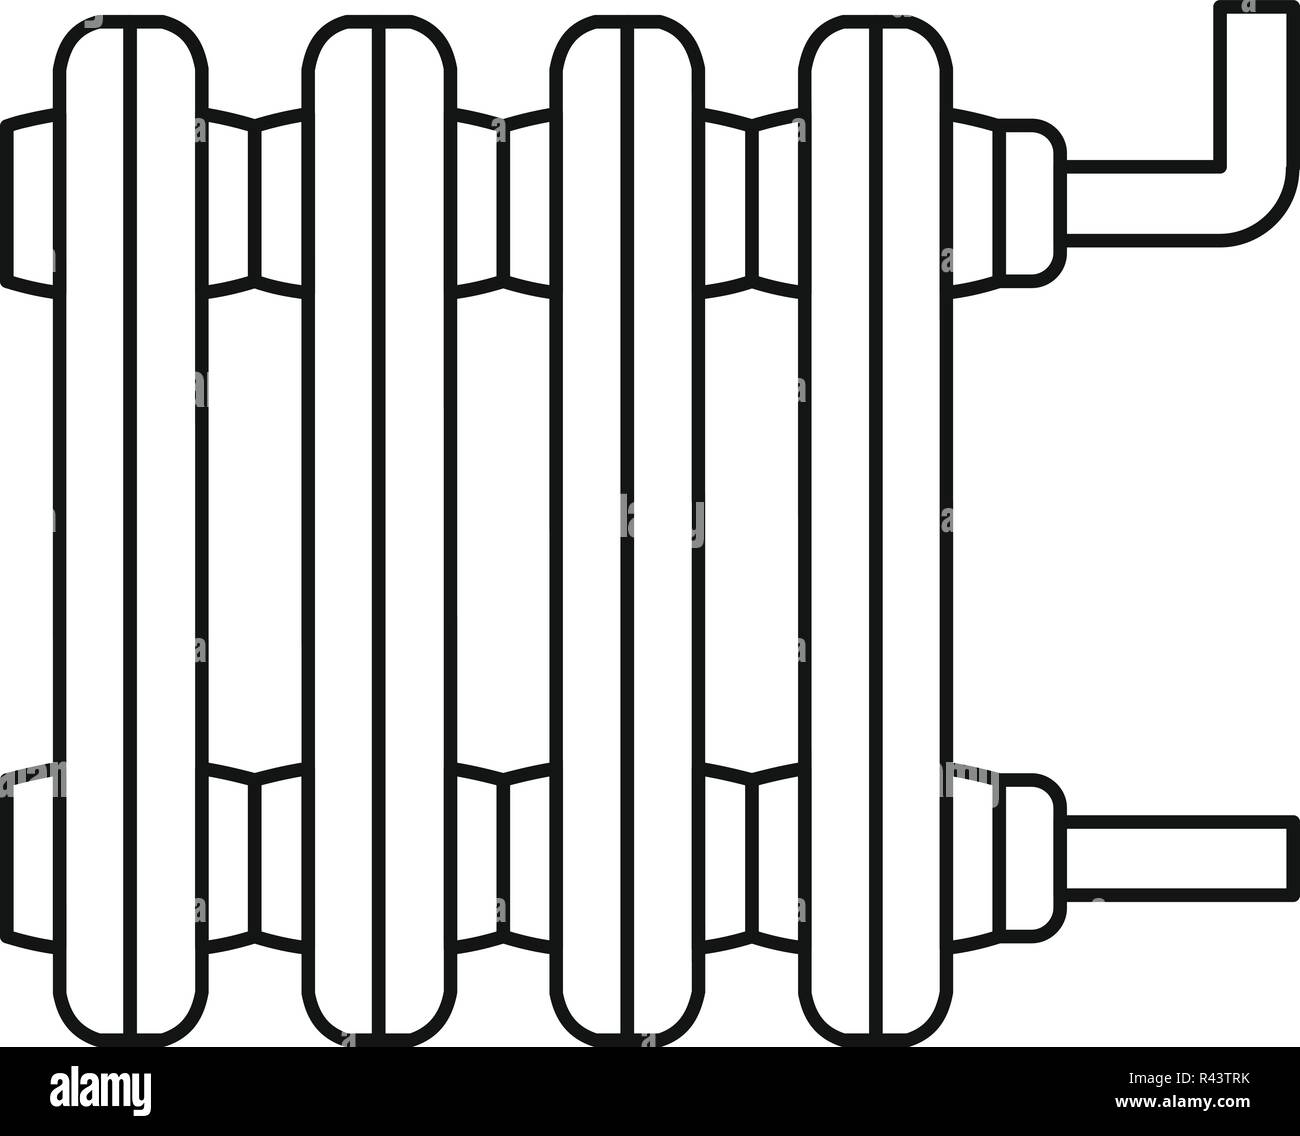 Old Home Radiator Icon Outline Illustration Of Old Home Radiator Vector Icon For Web Design Isolated On White Background Stock Vector Image Art Alamy